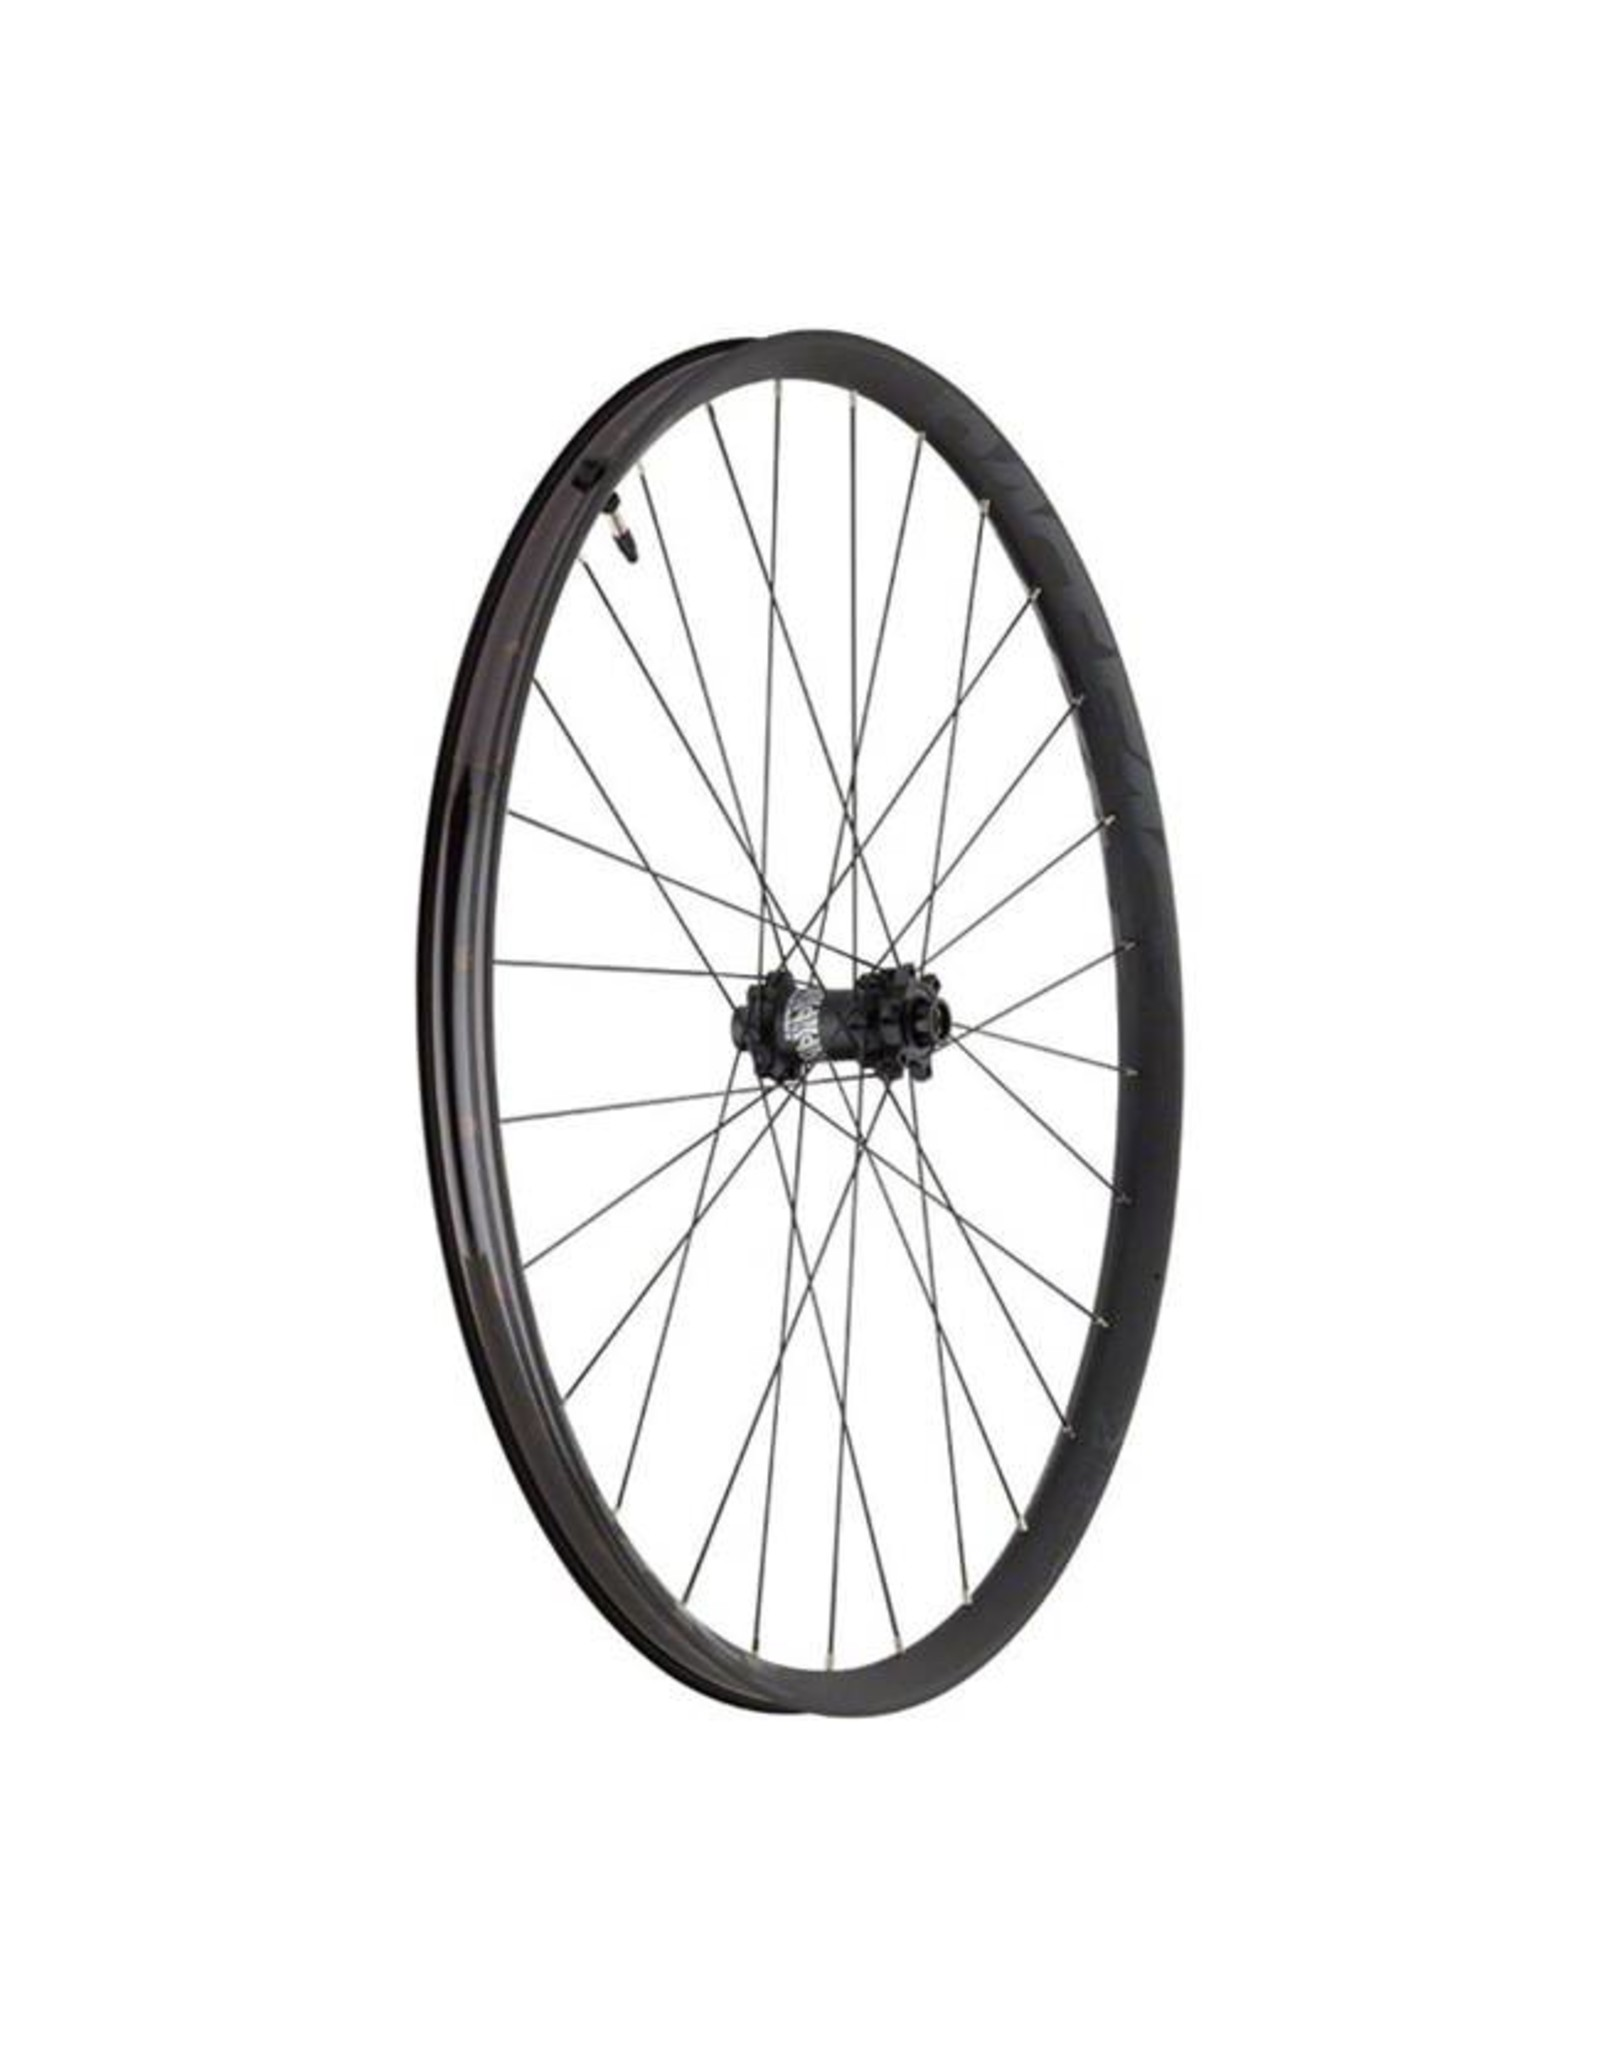 "RaceFace RaceFace Aeffect R Front Wheel: 27.5"", Alloy Rim, 15 x 110mm Thru Axle"